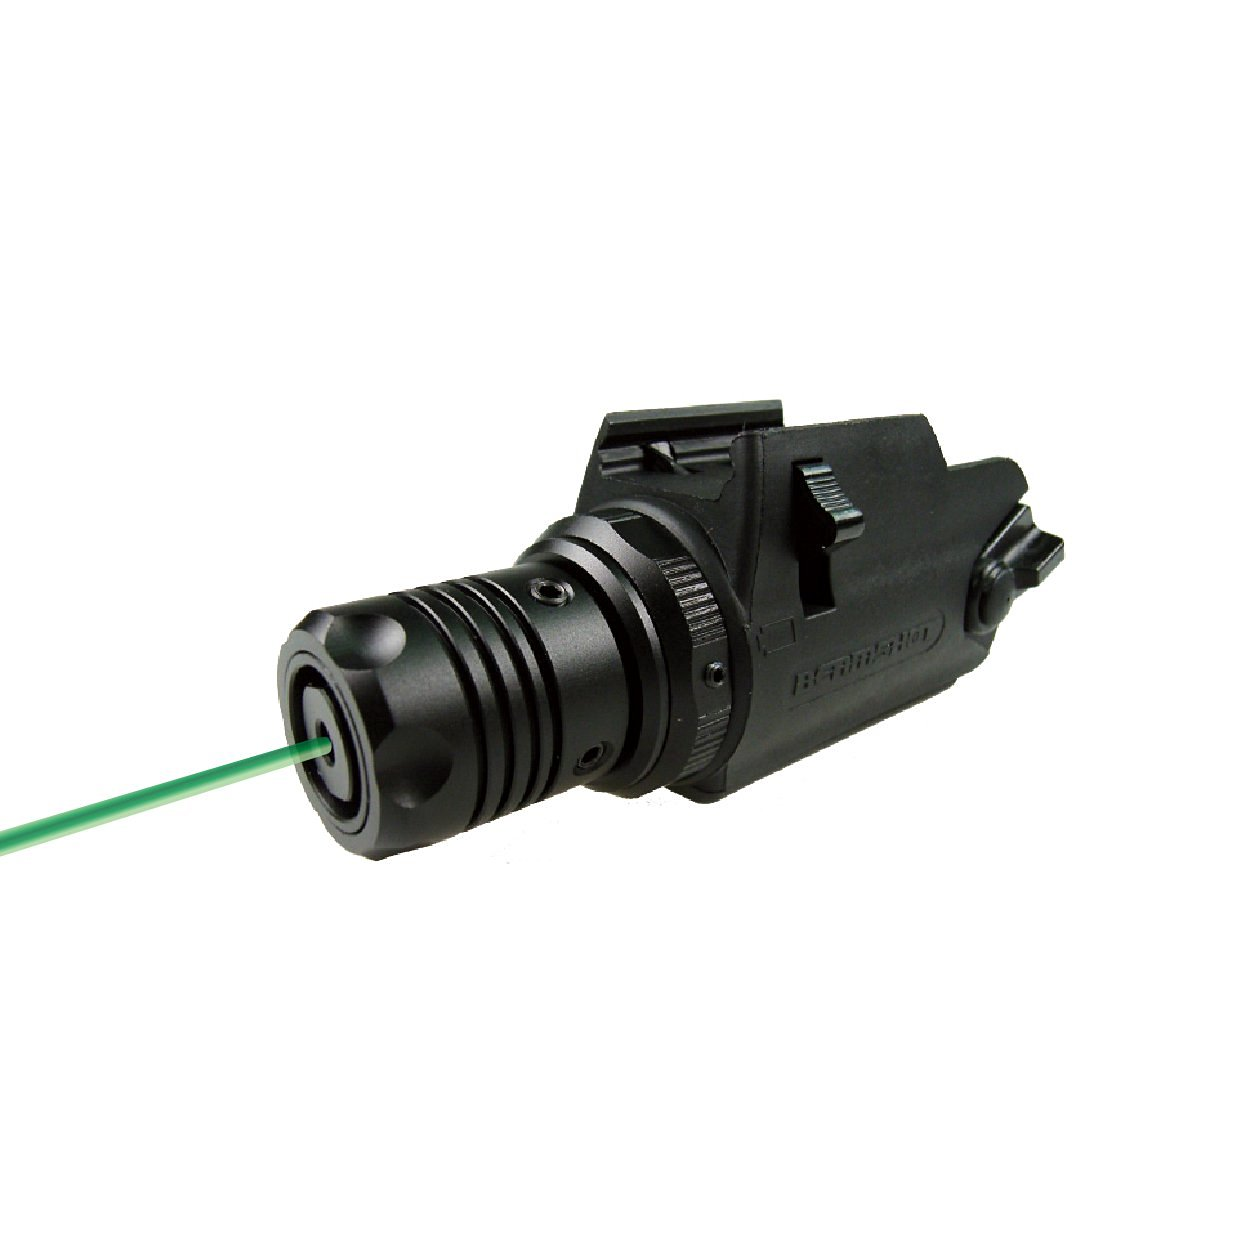 Cheap Beamshot Green Laser Find Deals On Line Theus Pointer Get Quotations Gb8300s Sight True Daylight With Quick Detach System Carrying Case And Battery